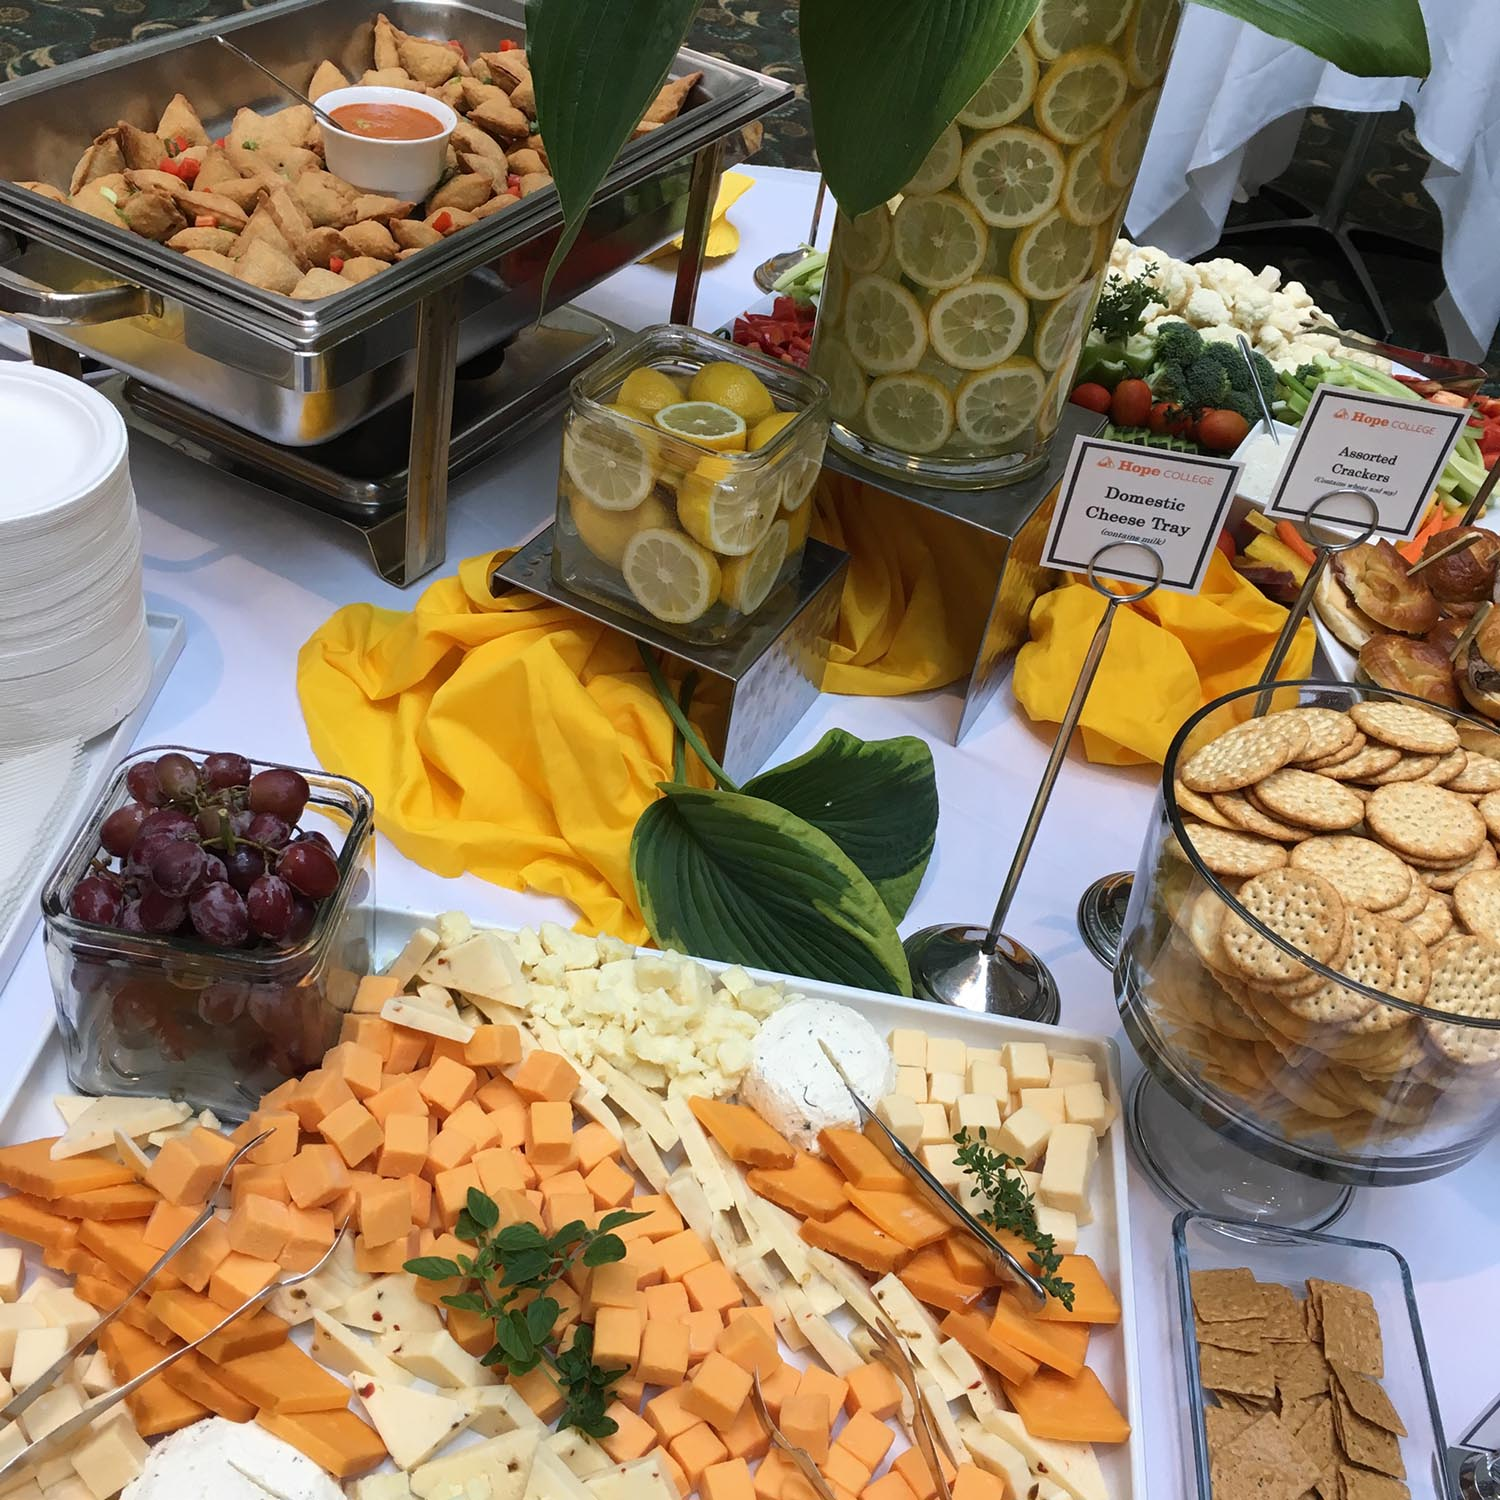 Catering set up with cheese and crackers